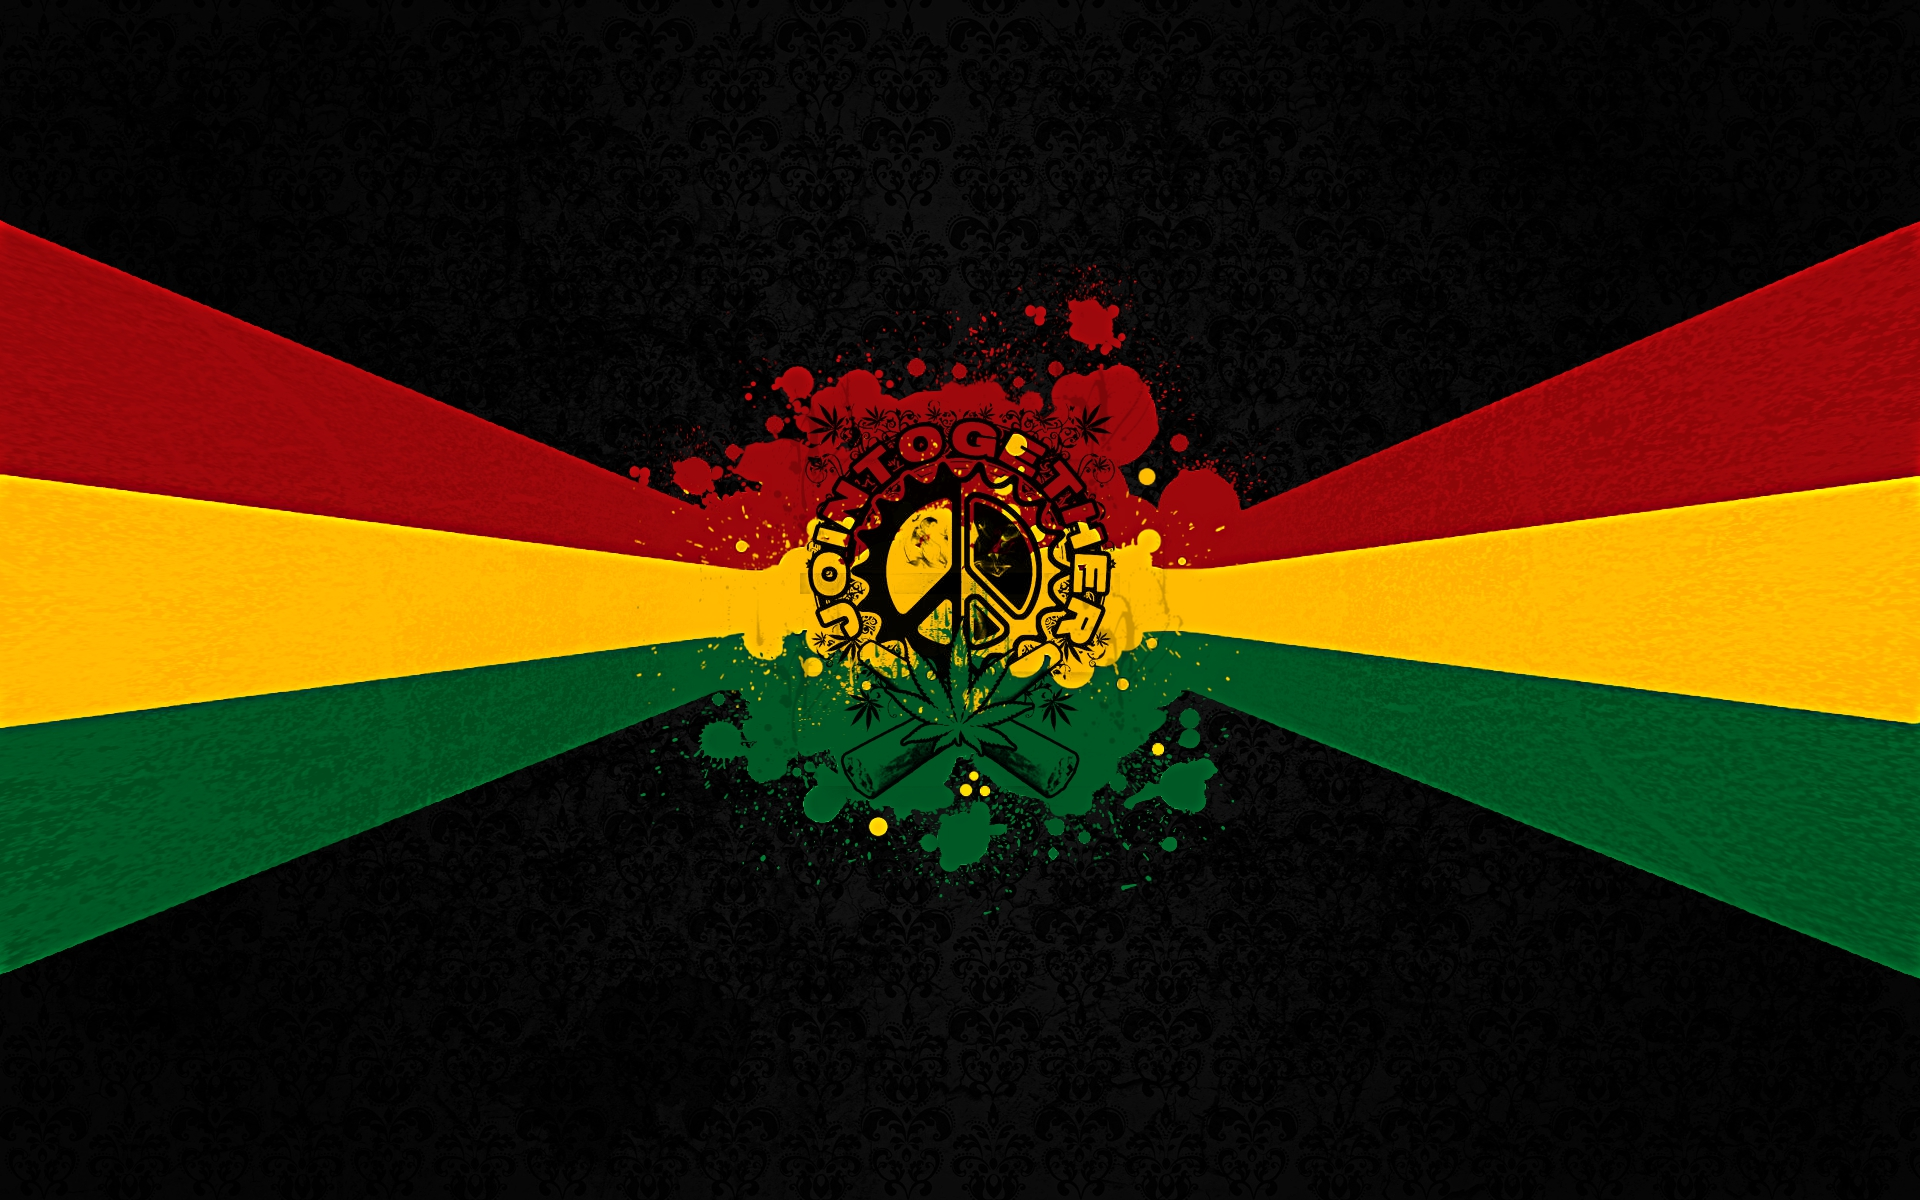 Rasta_wallpaper_v_2_1_by_nnton D4mr2su